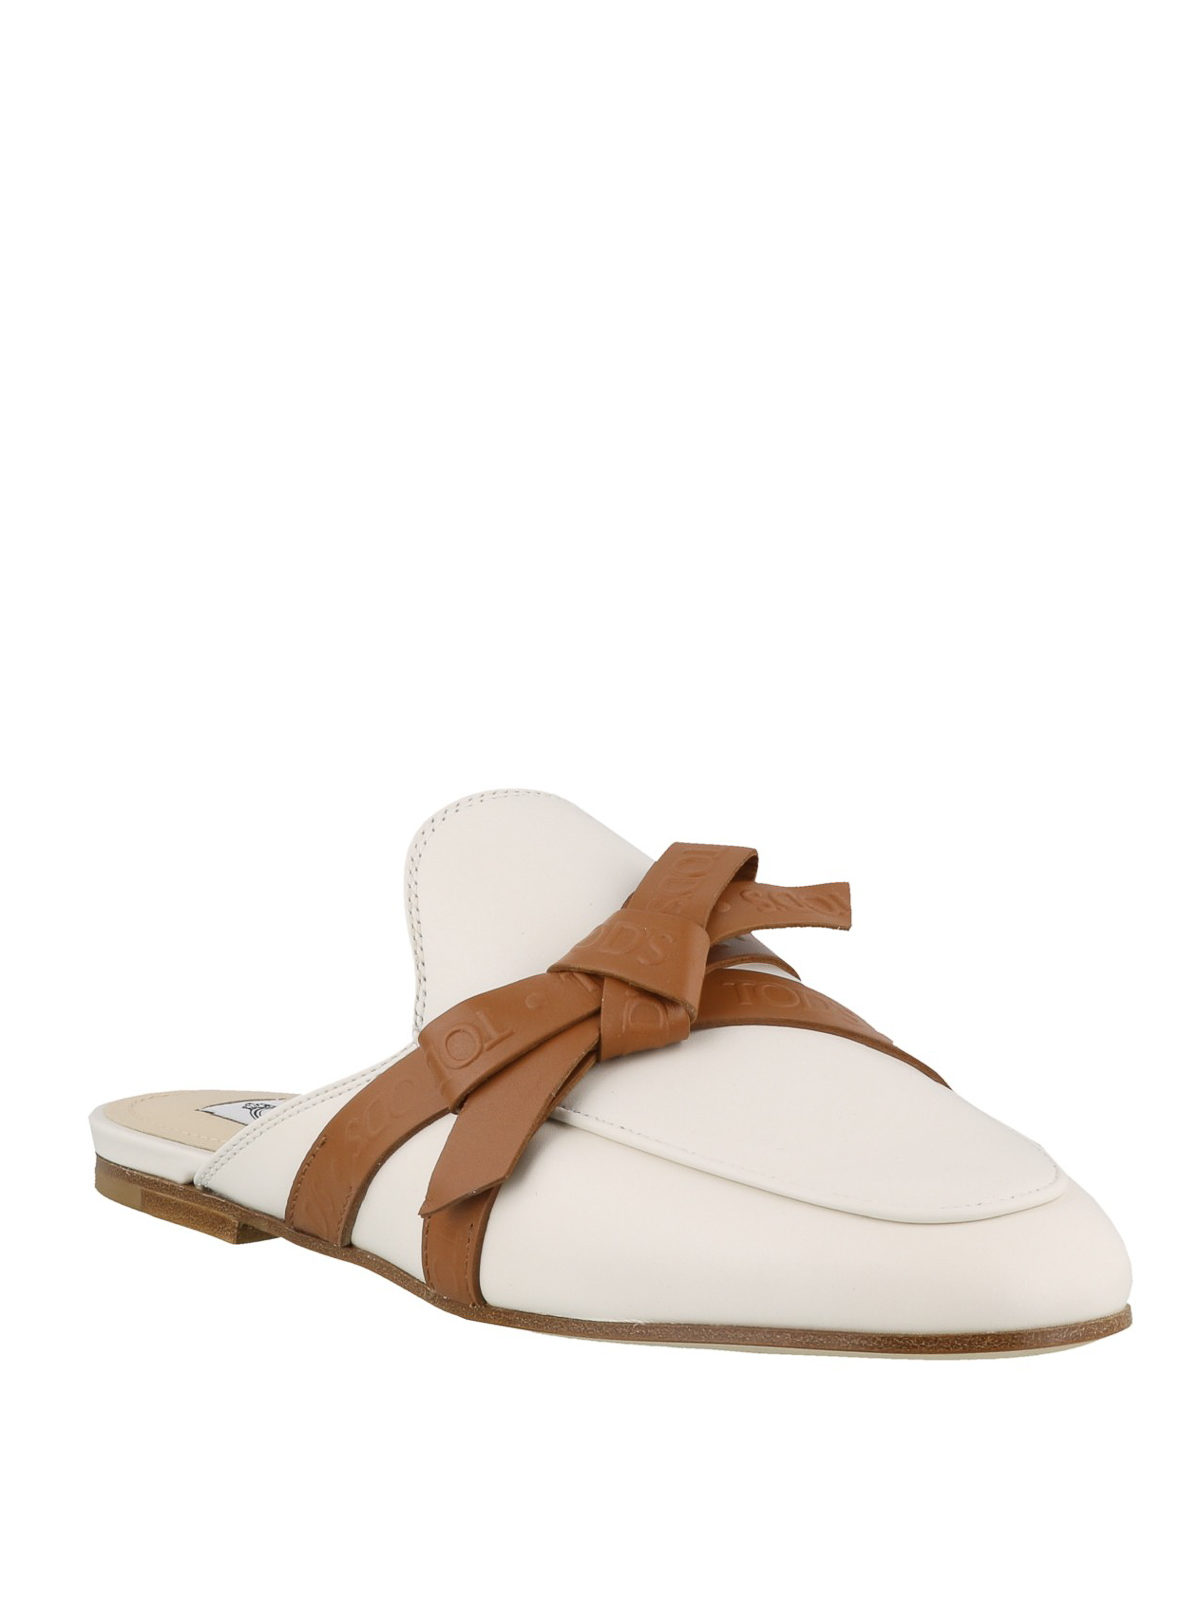 Tod'S - Bow detail white leather mules